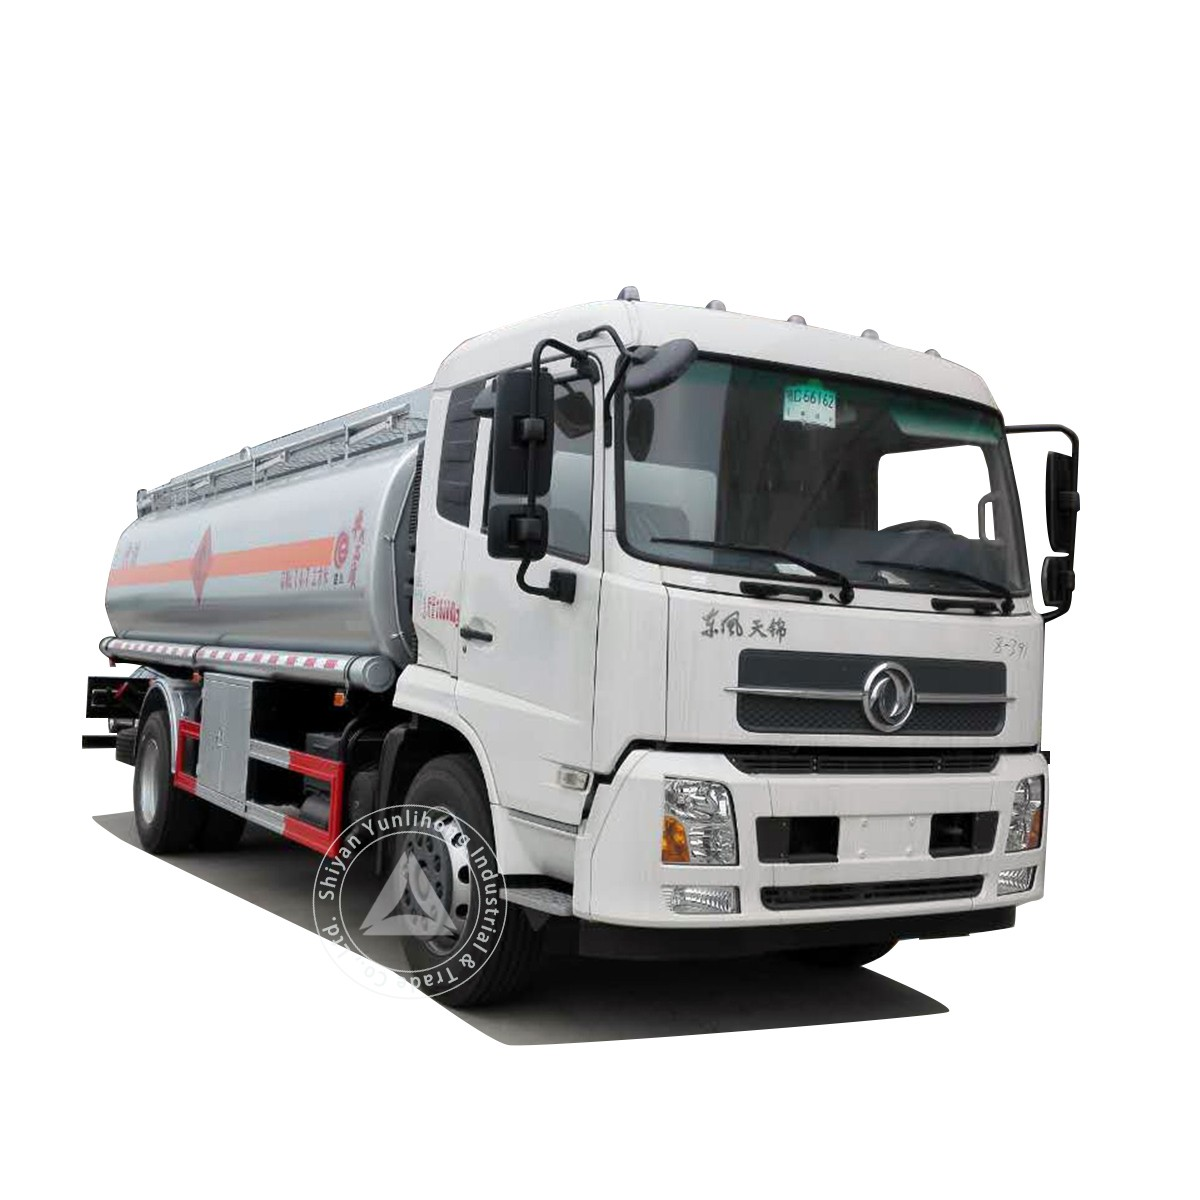 Dongfeng KR 4x2 GVW 15t Petroleum & Chemical Transport Tank Truck